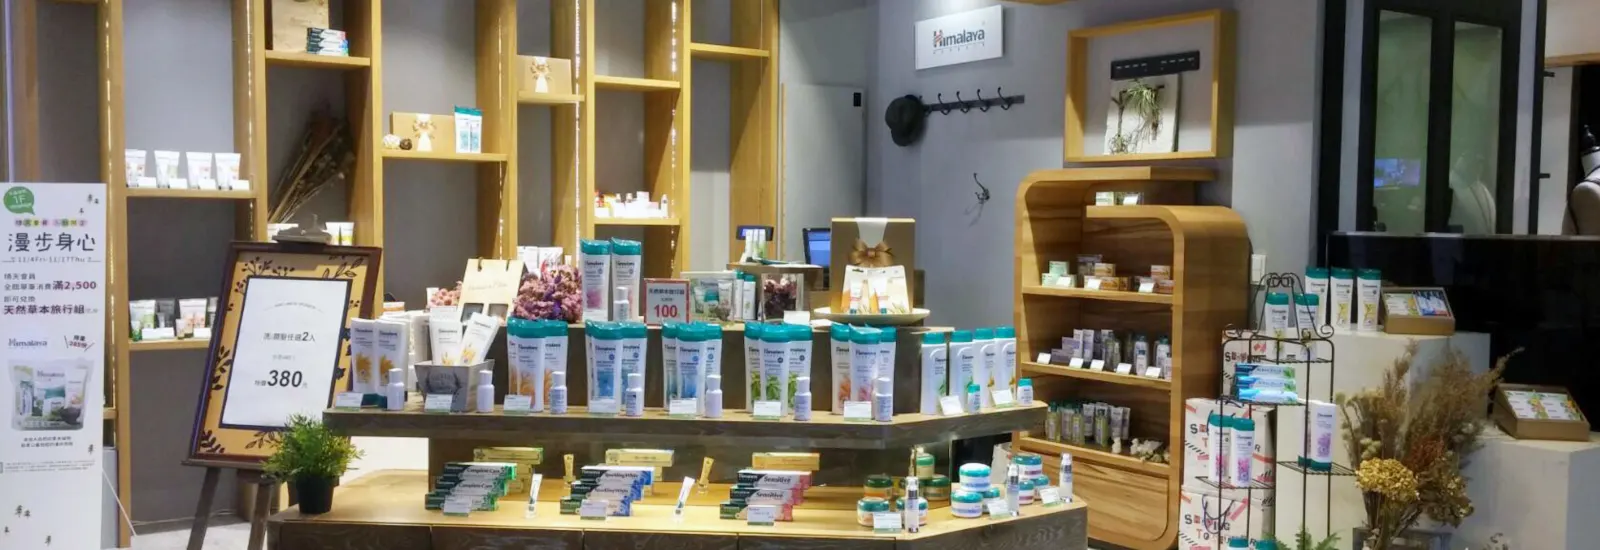 Himalaya products in store – Sustainability packaging - The Himalaya Drug Company